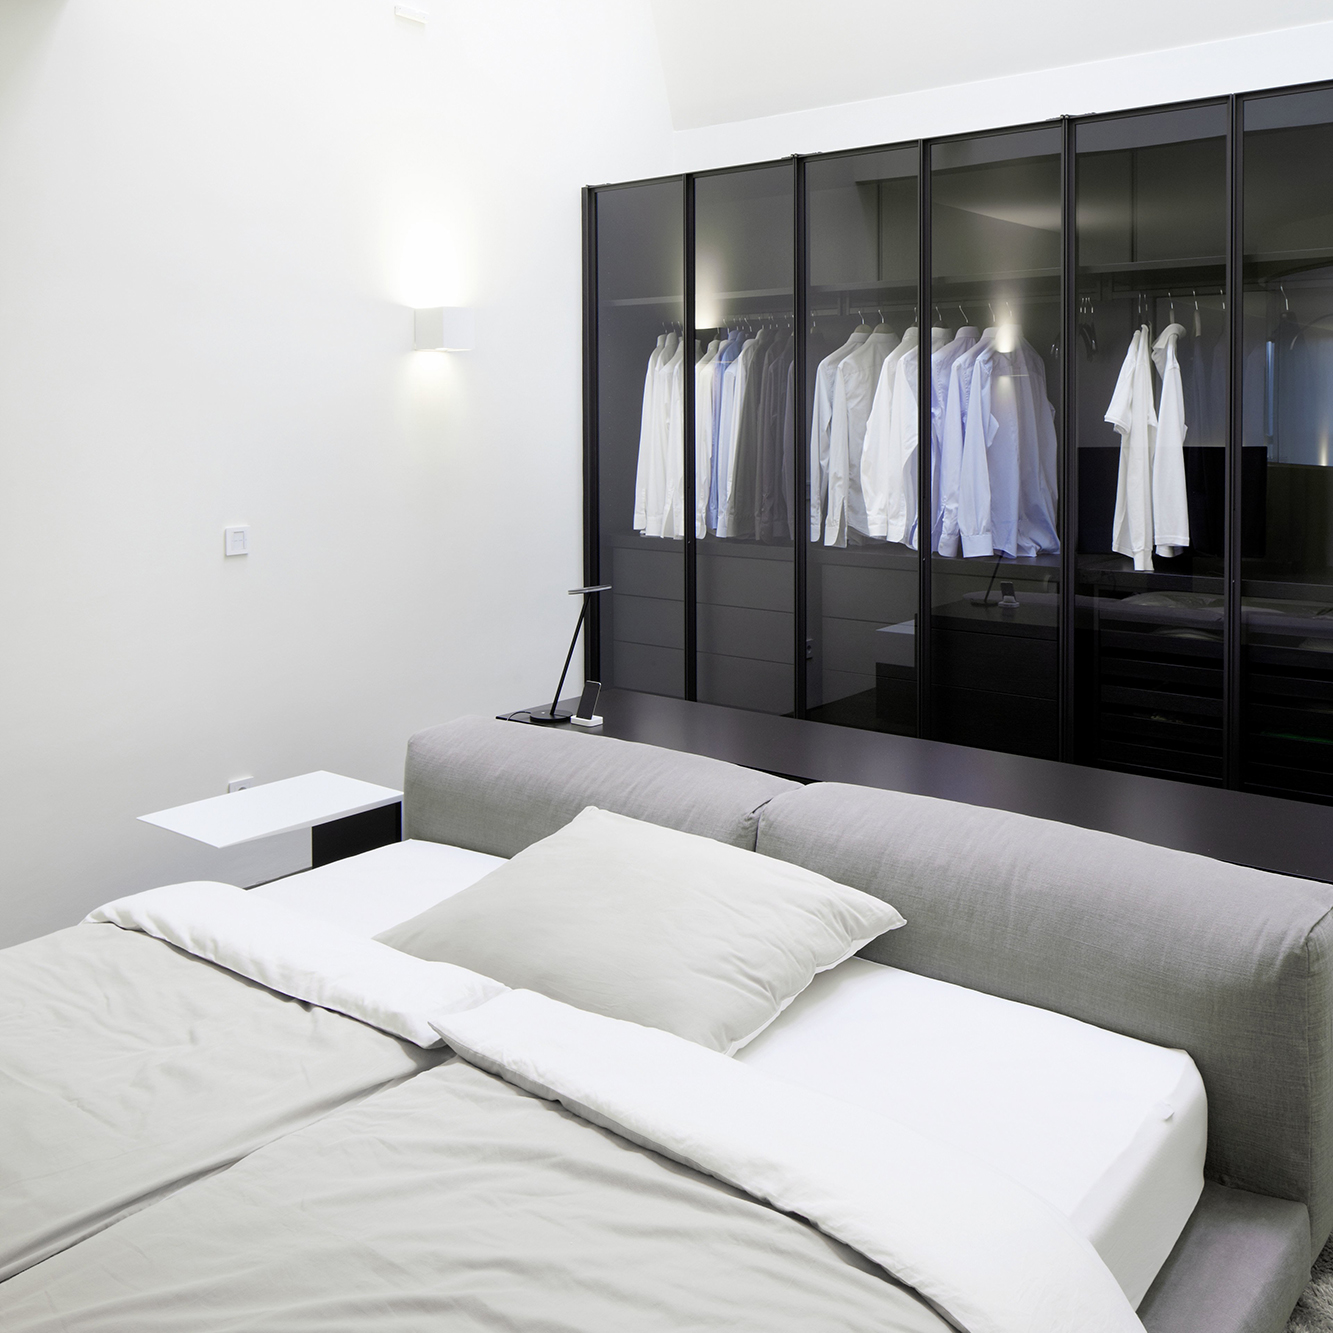 Porro, image:contract_immagini - Porro Spa - Linearity and elegance with Pull-out sliding wardrobe - Wien (Austria)